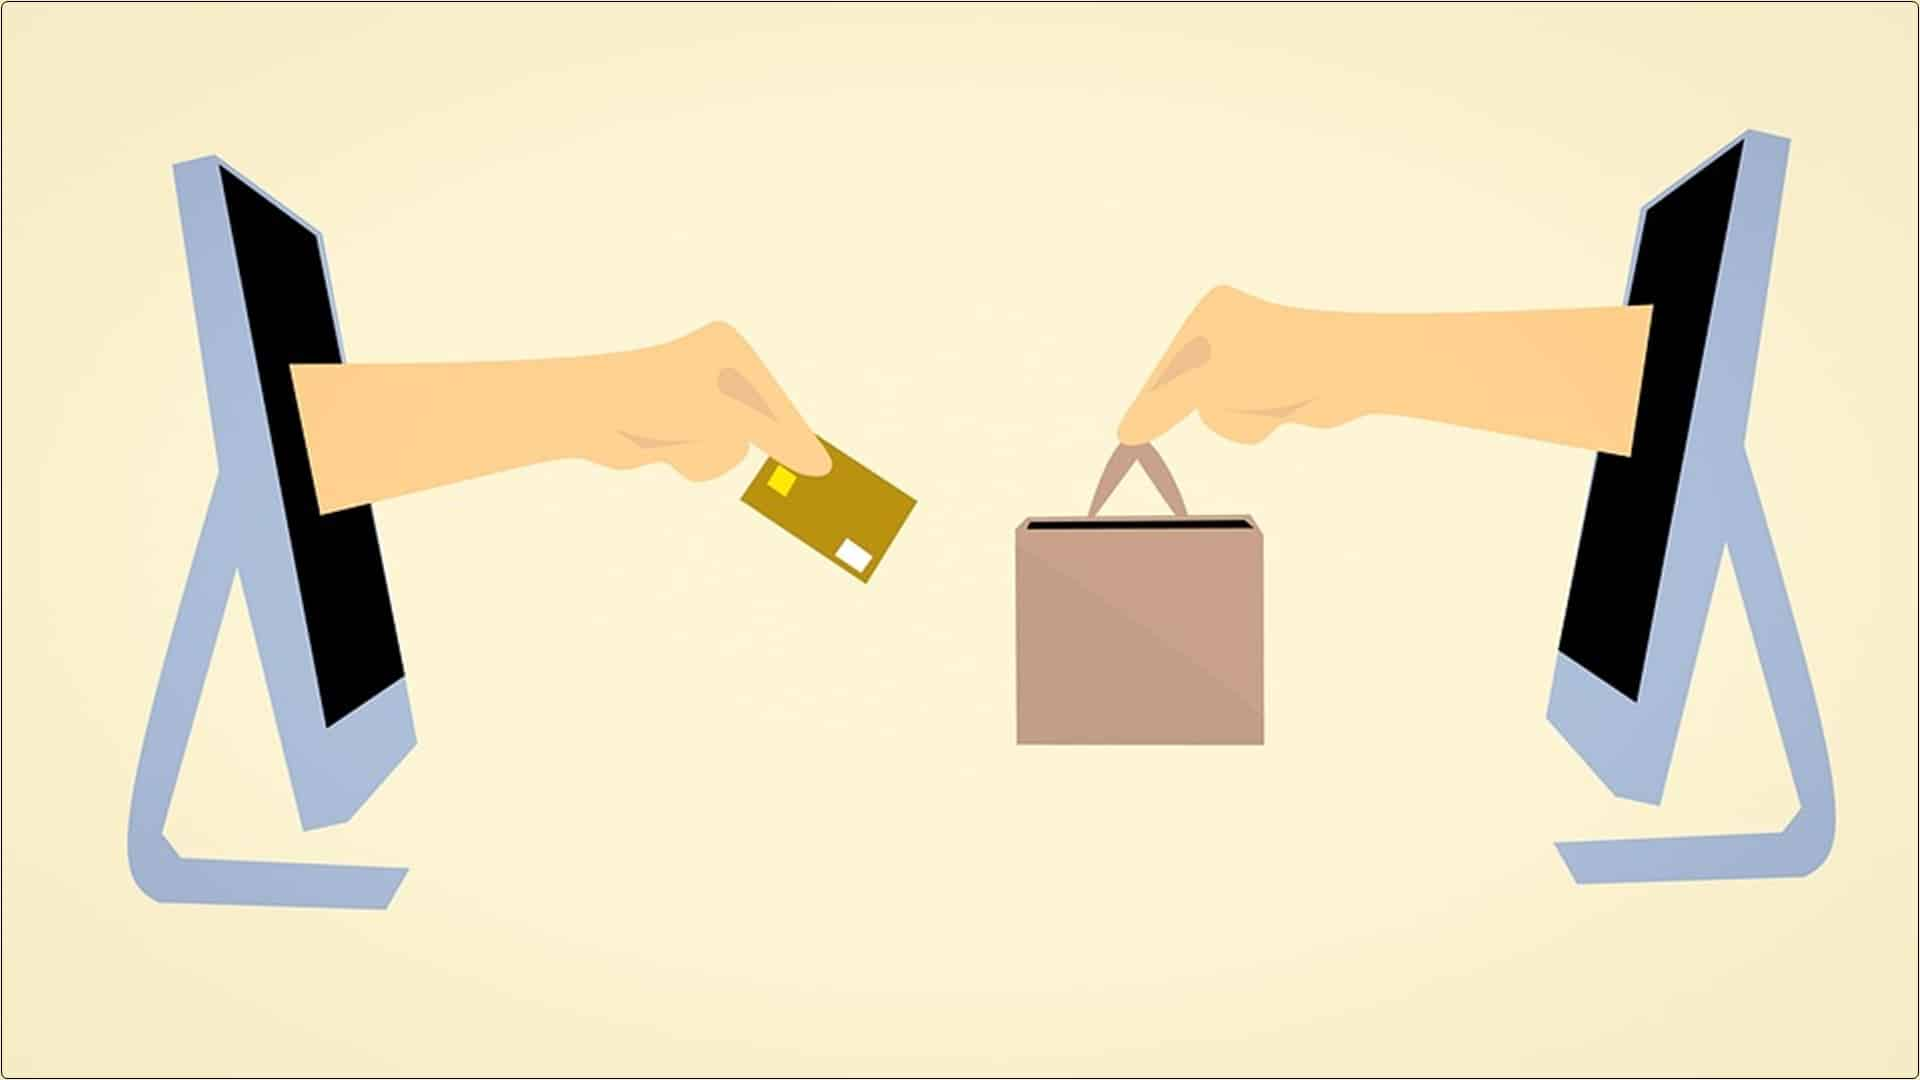 Majority of ecommerce consumers don't want a ban on flash sales: Survey